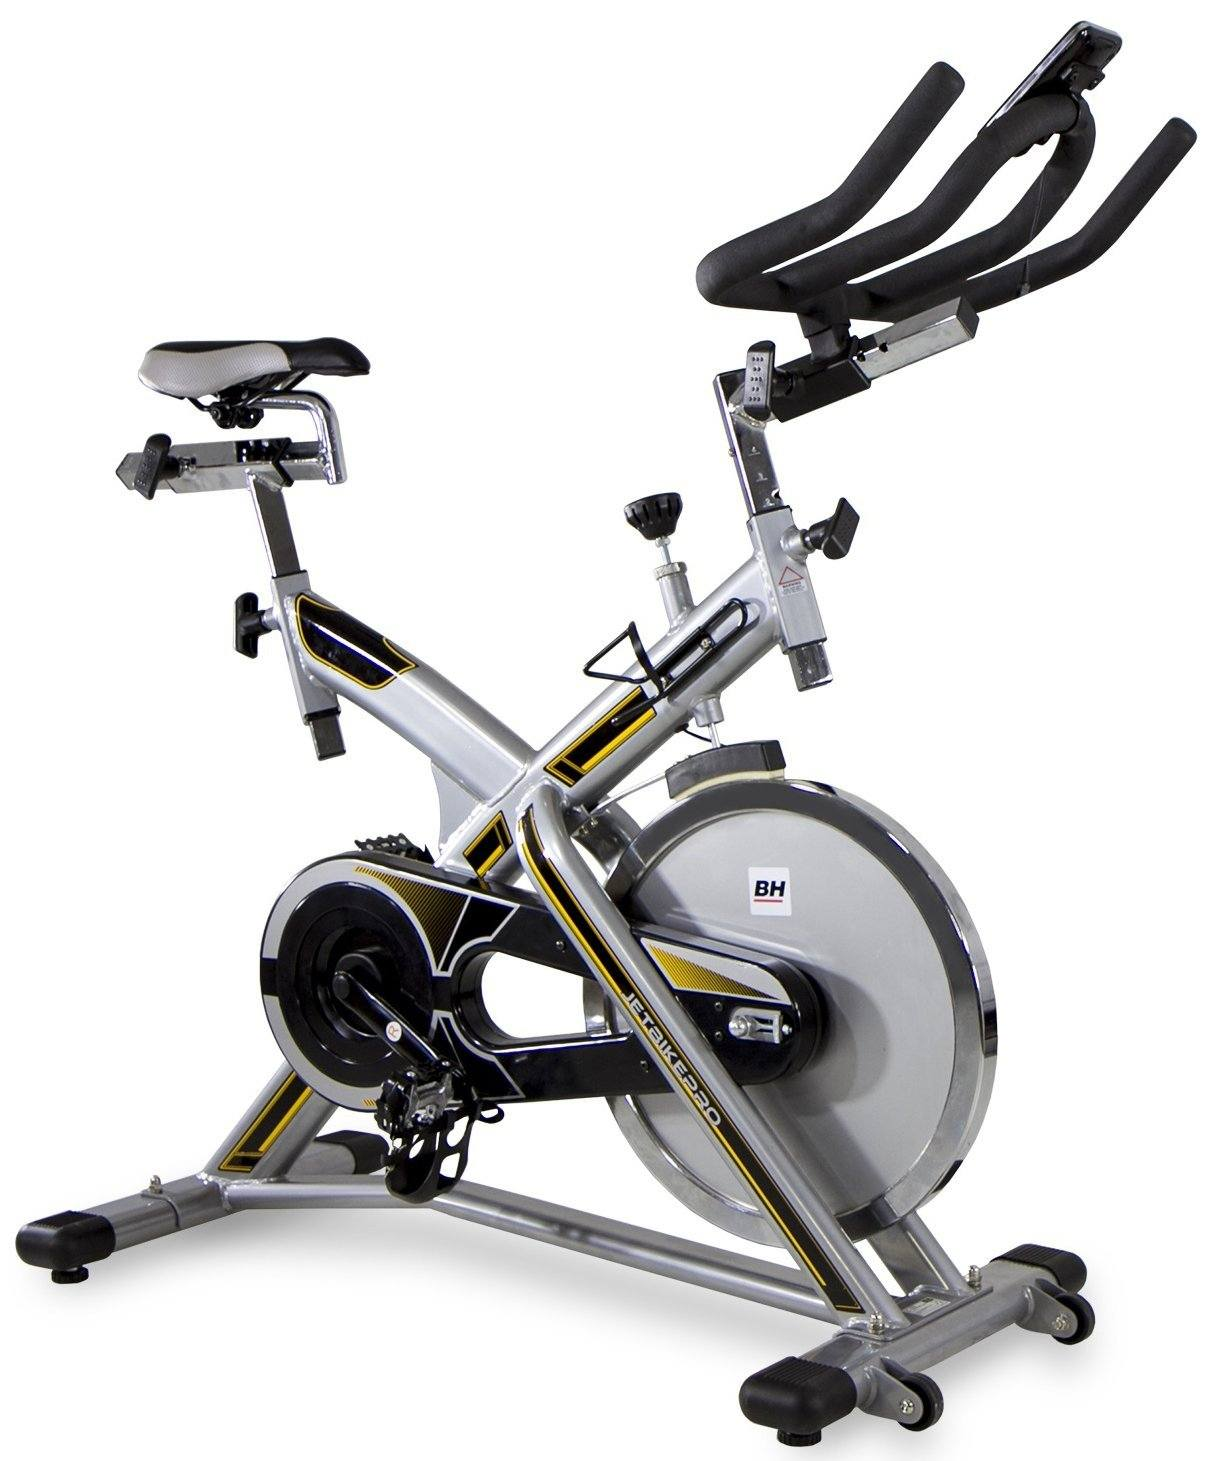 das bh fitness indoorcycling jet bike pro in wei rot. Black Bedroom Furniture Sets. Home Design Ideas